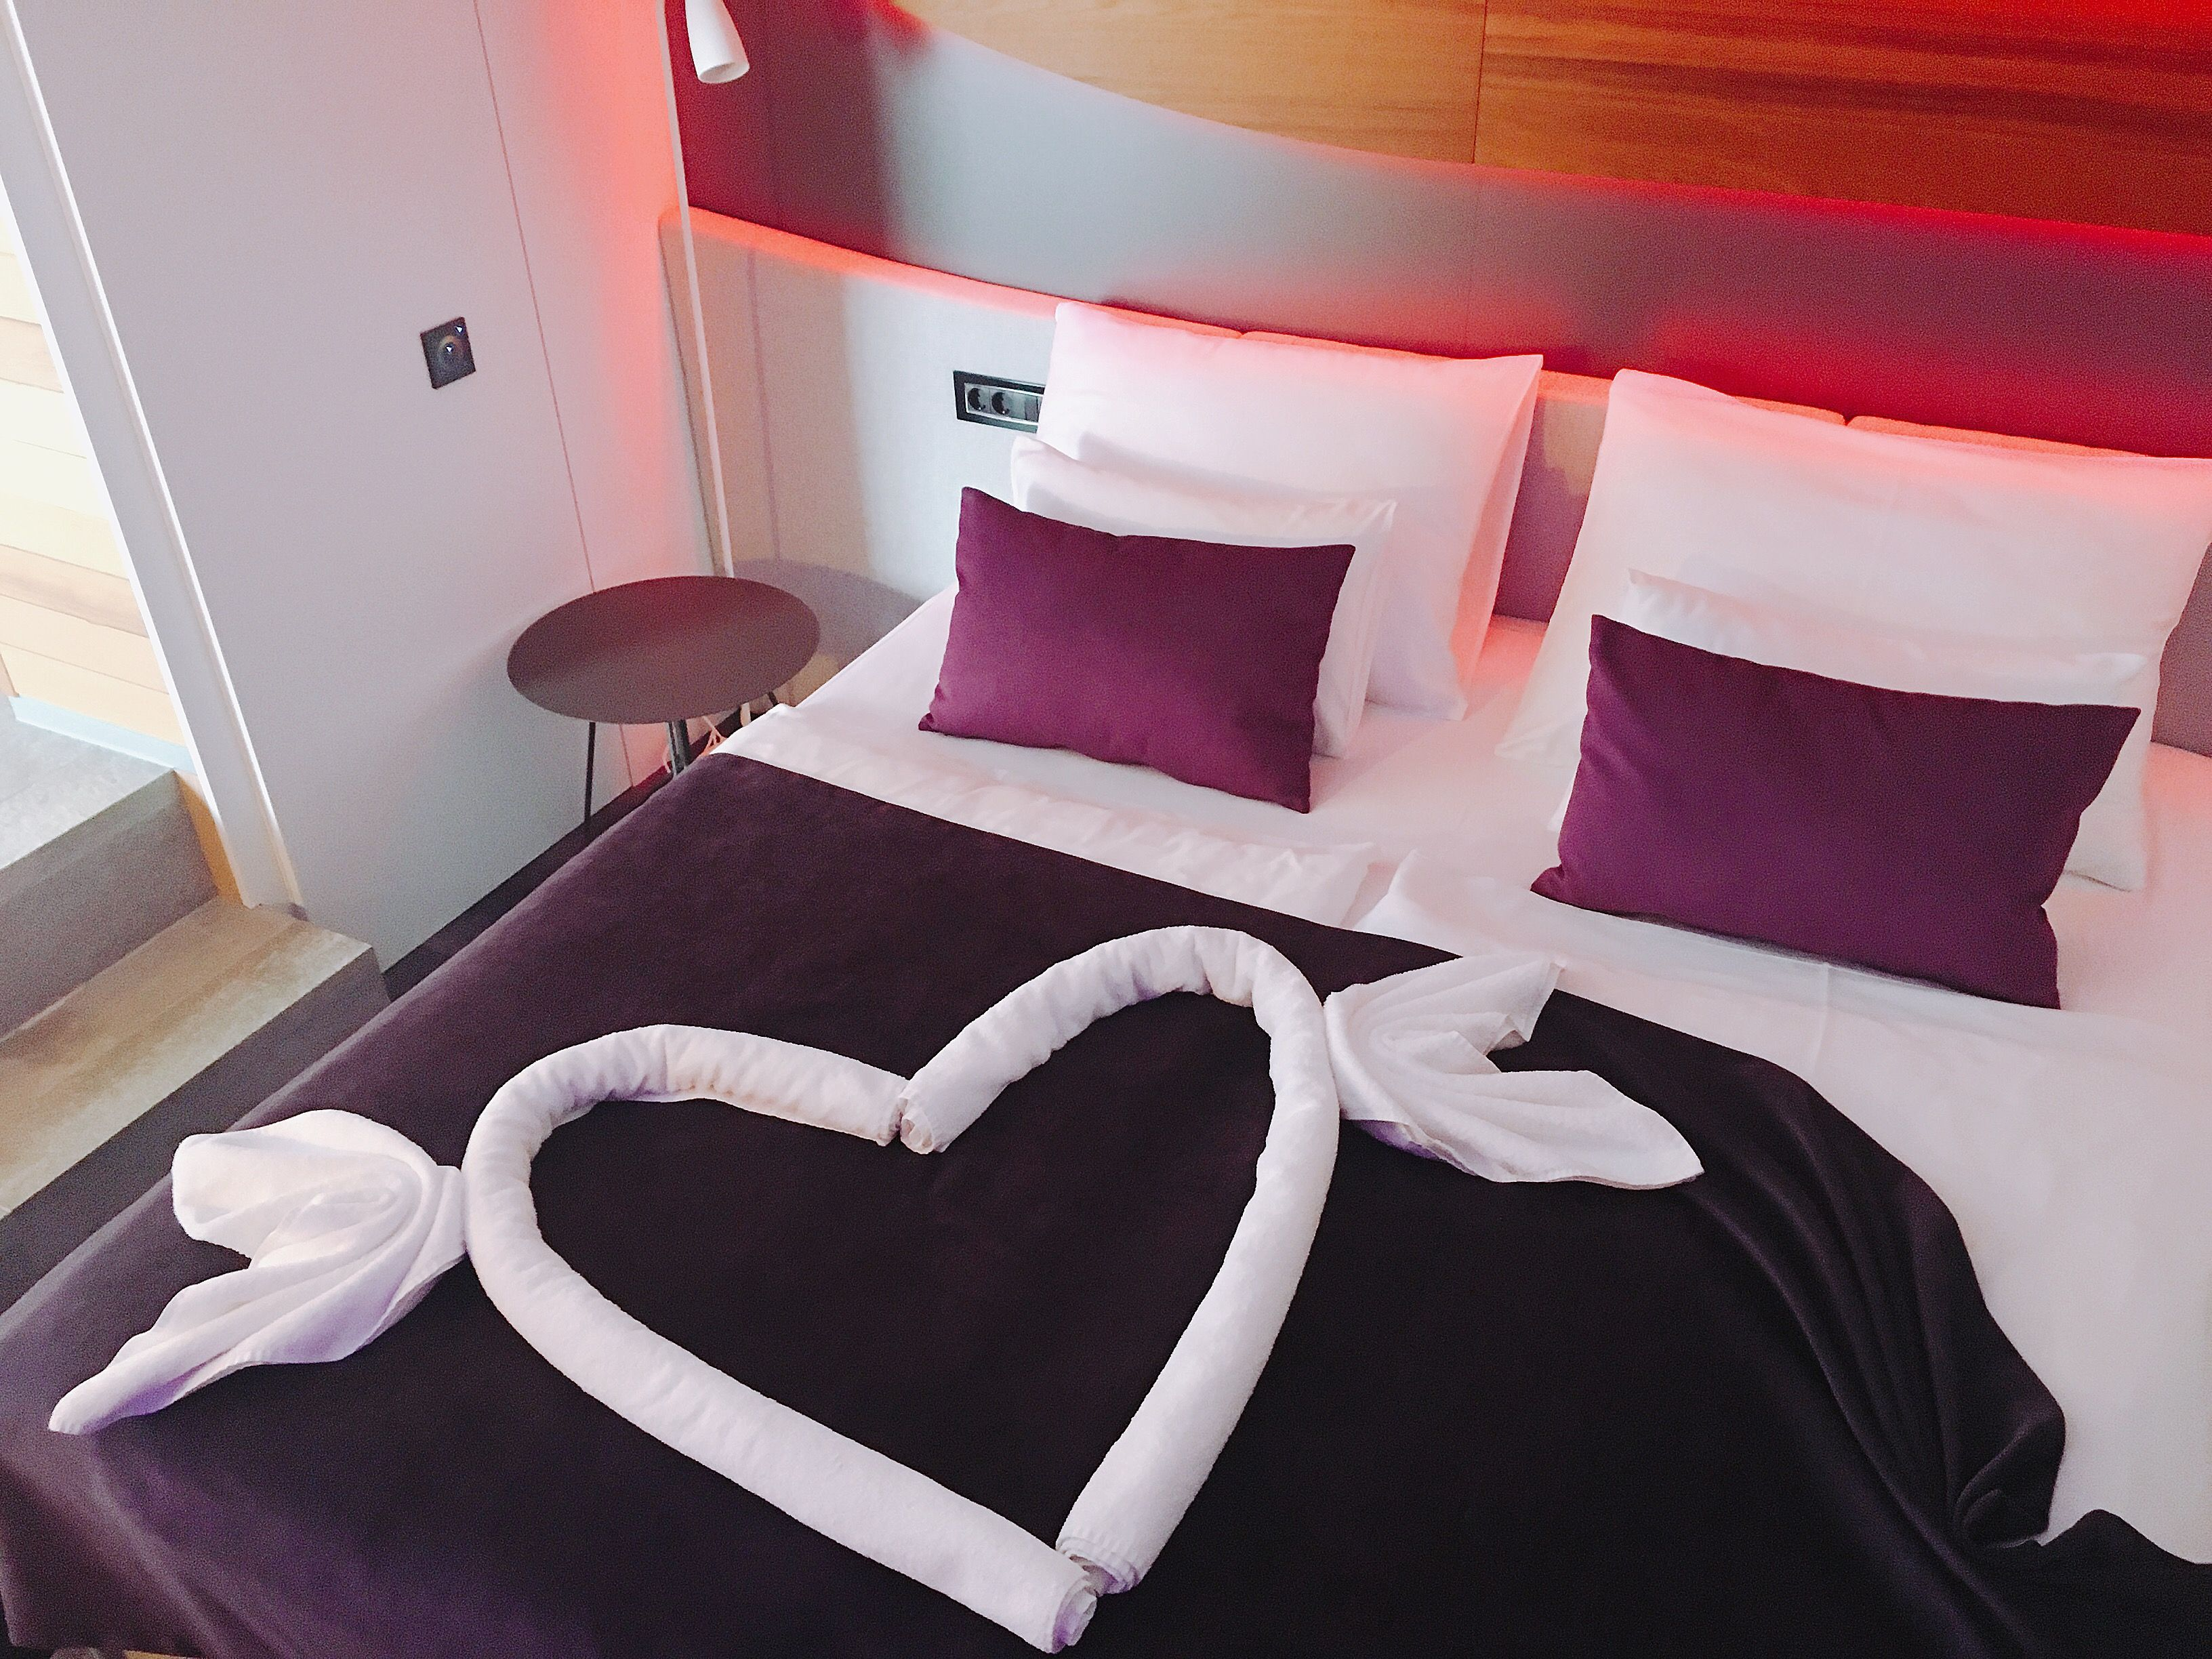 Heart With Wings Towel Folding Romantic Hotel Room Blueberry Color Romantic Hotel Rooms Valentine Bedroom Decor Wedding Hotel Room